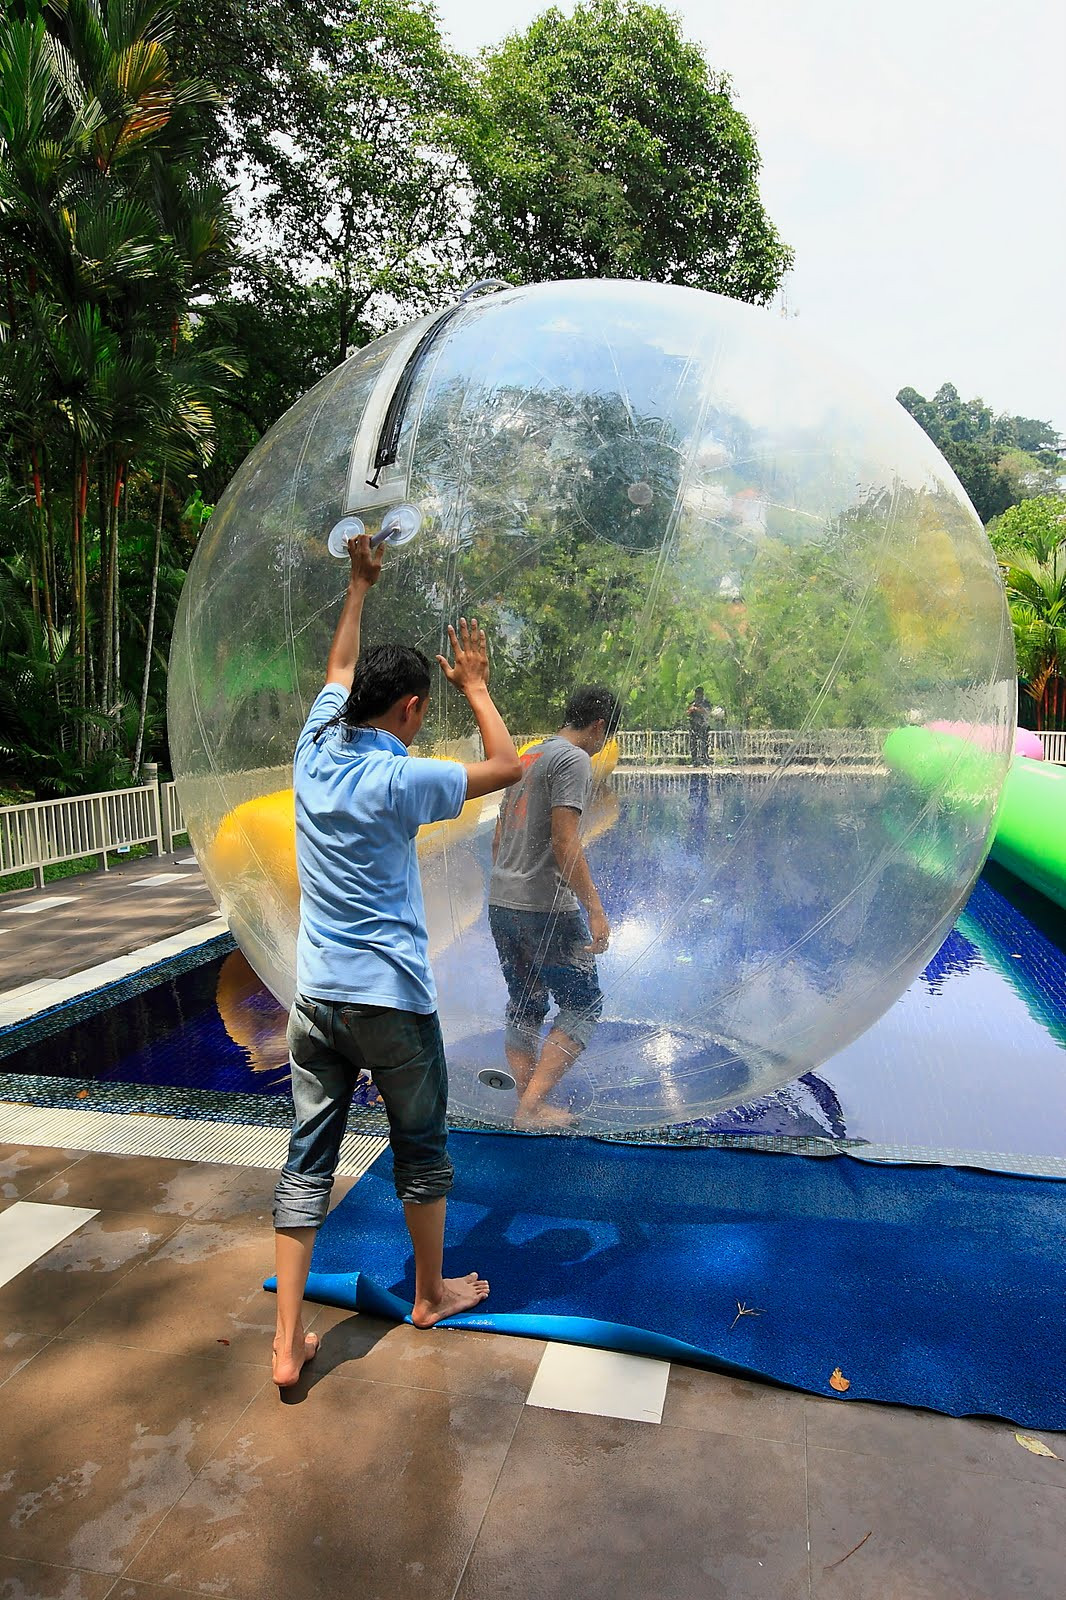 Summer Pool Party Ideas For Adults  Event DirecTus Pool Party FUN for KIDS TEENS & ADULTS